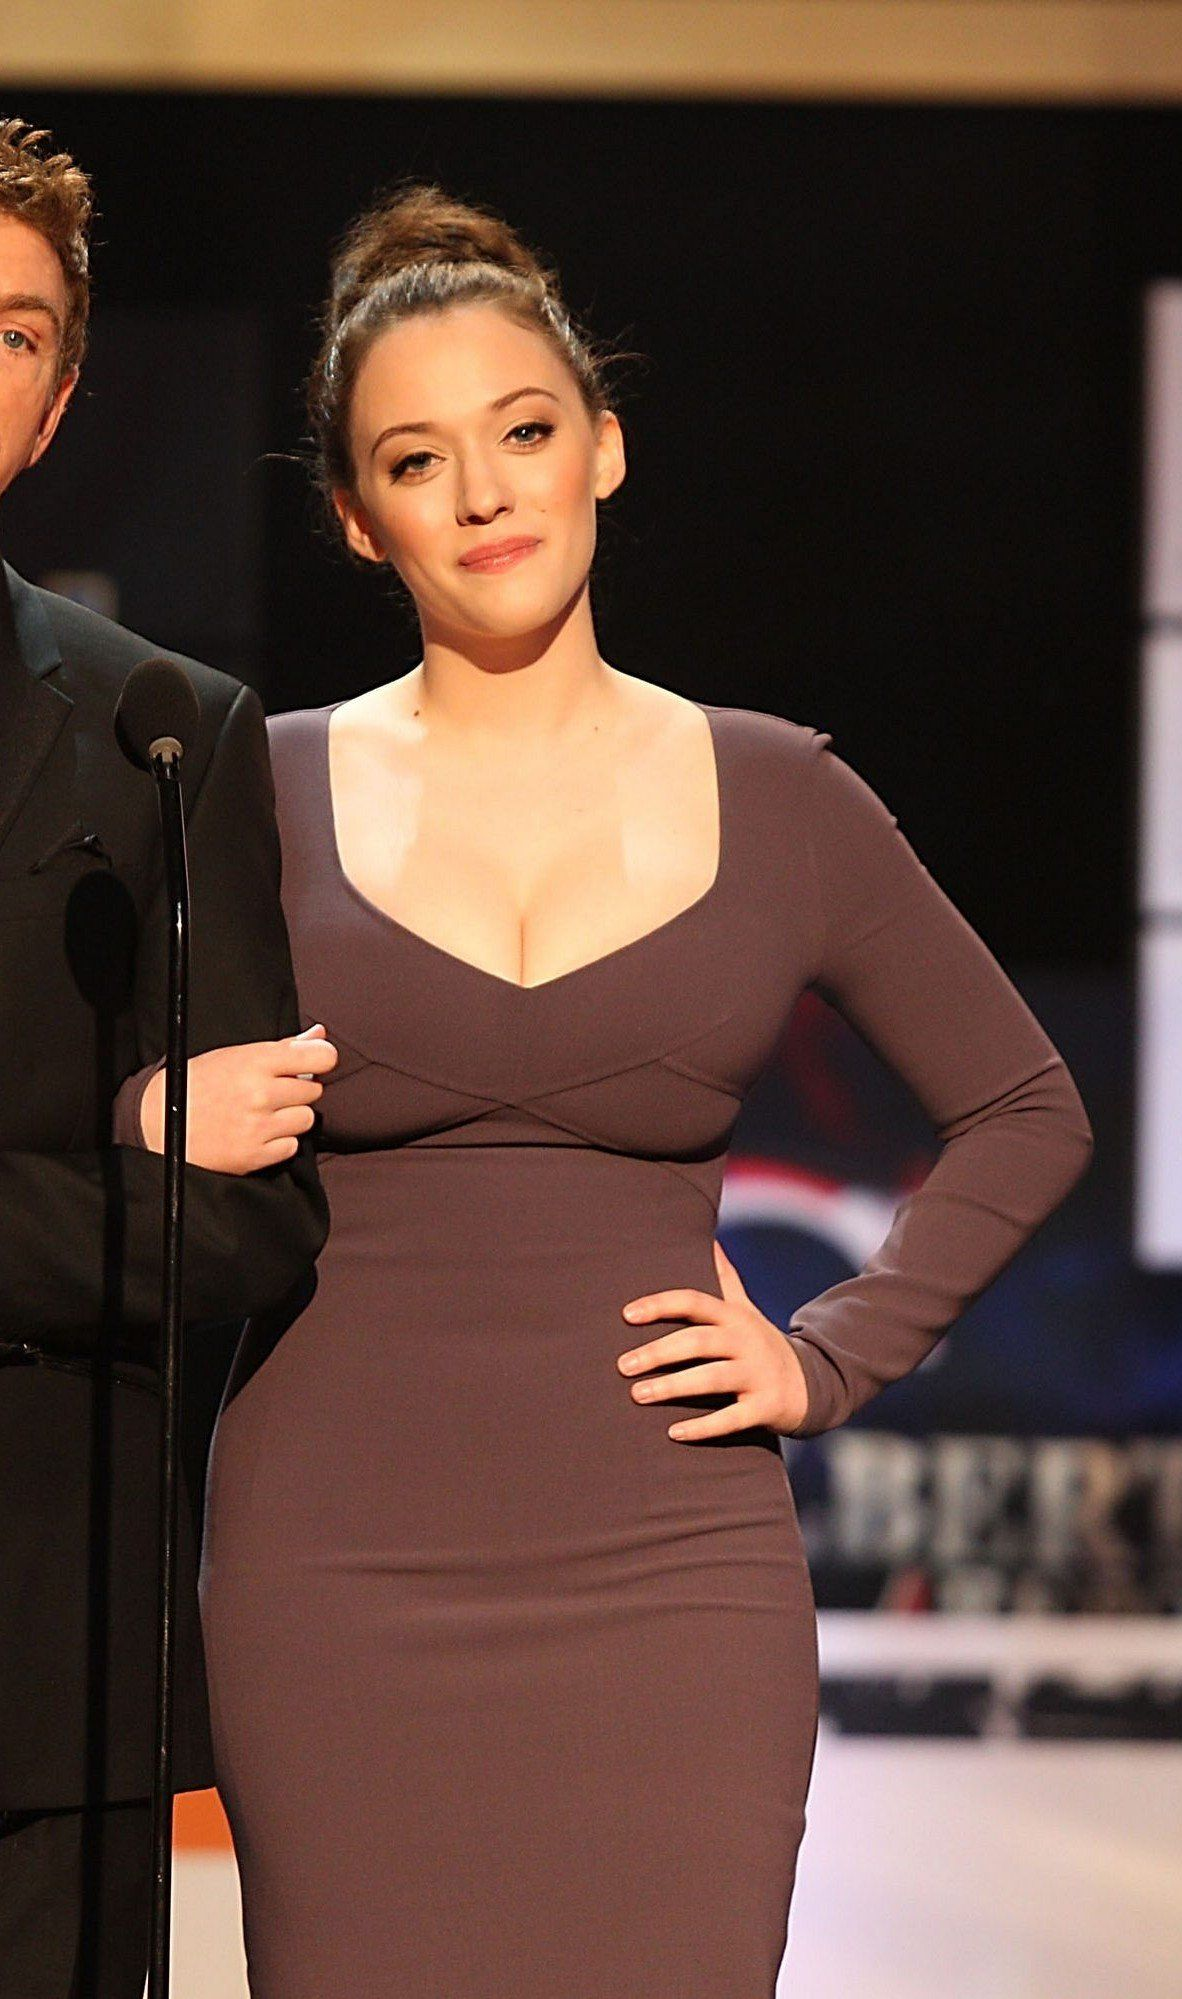 Kat Dennings My dream body right there. Perfectly curvy